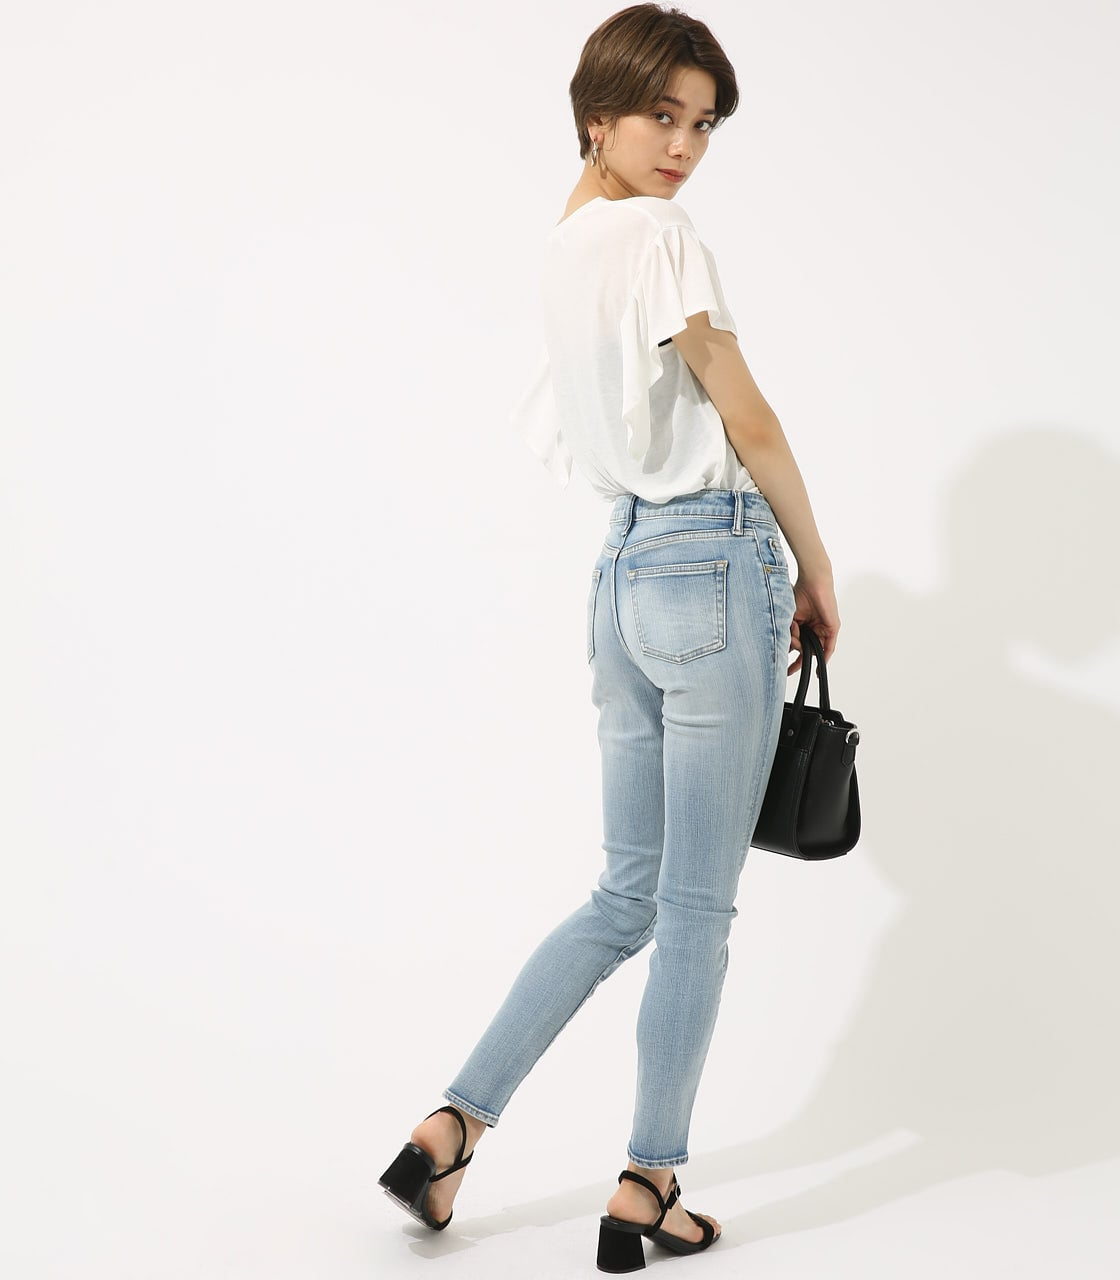 【AZUL BY MOUSSY】SOFT TOUCH スキニー 詳細画像 L/BLU 4